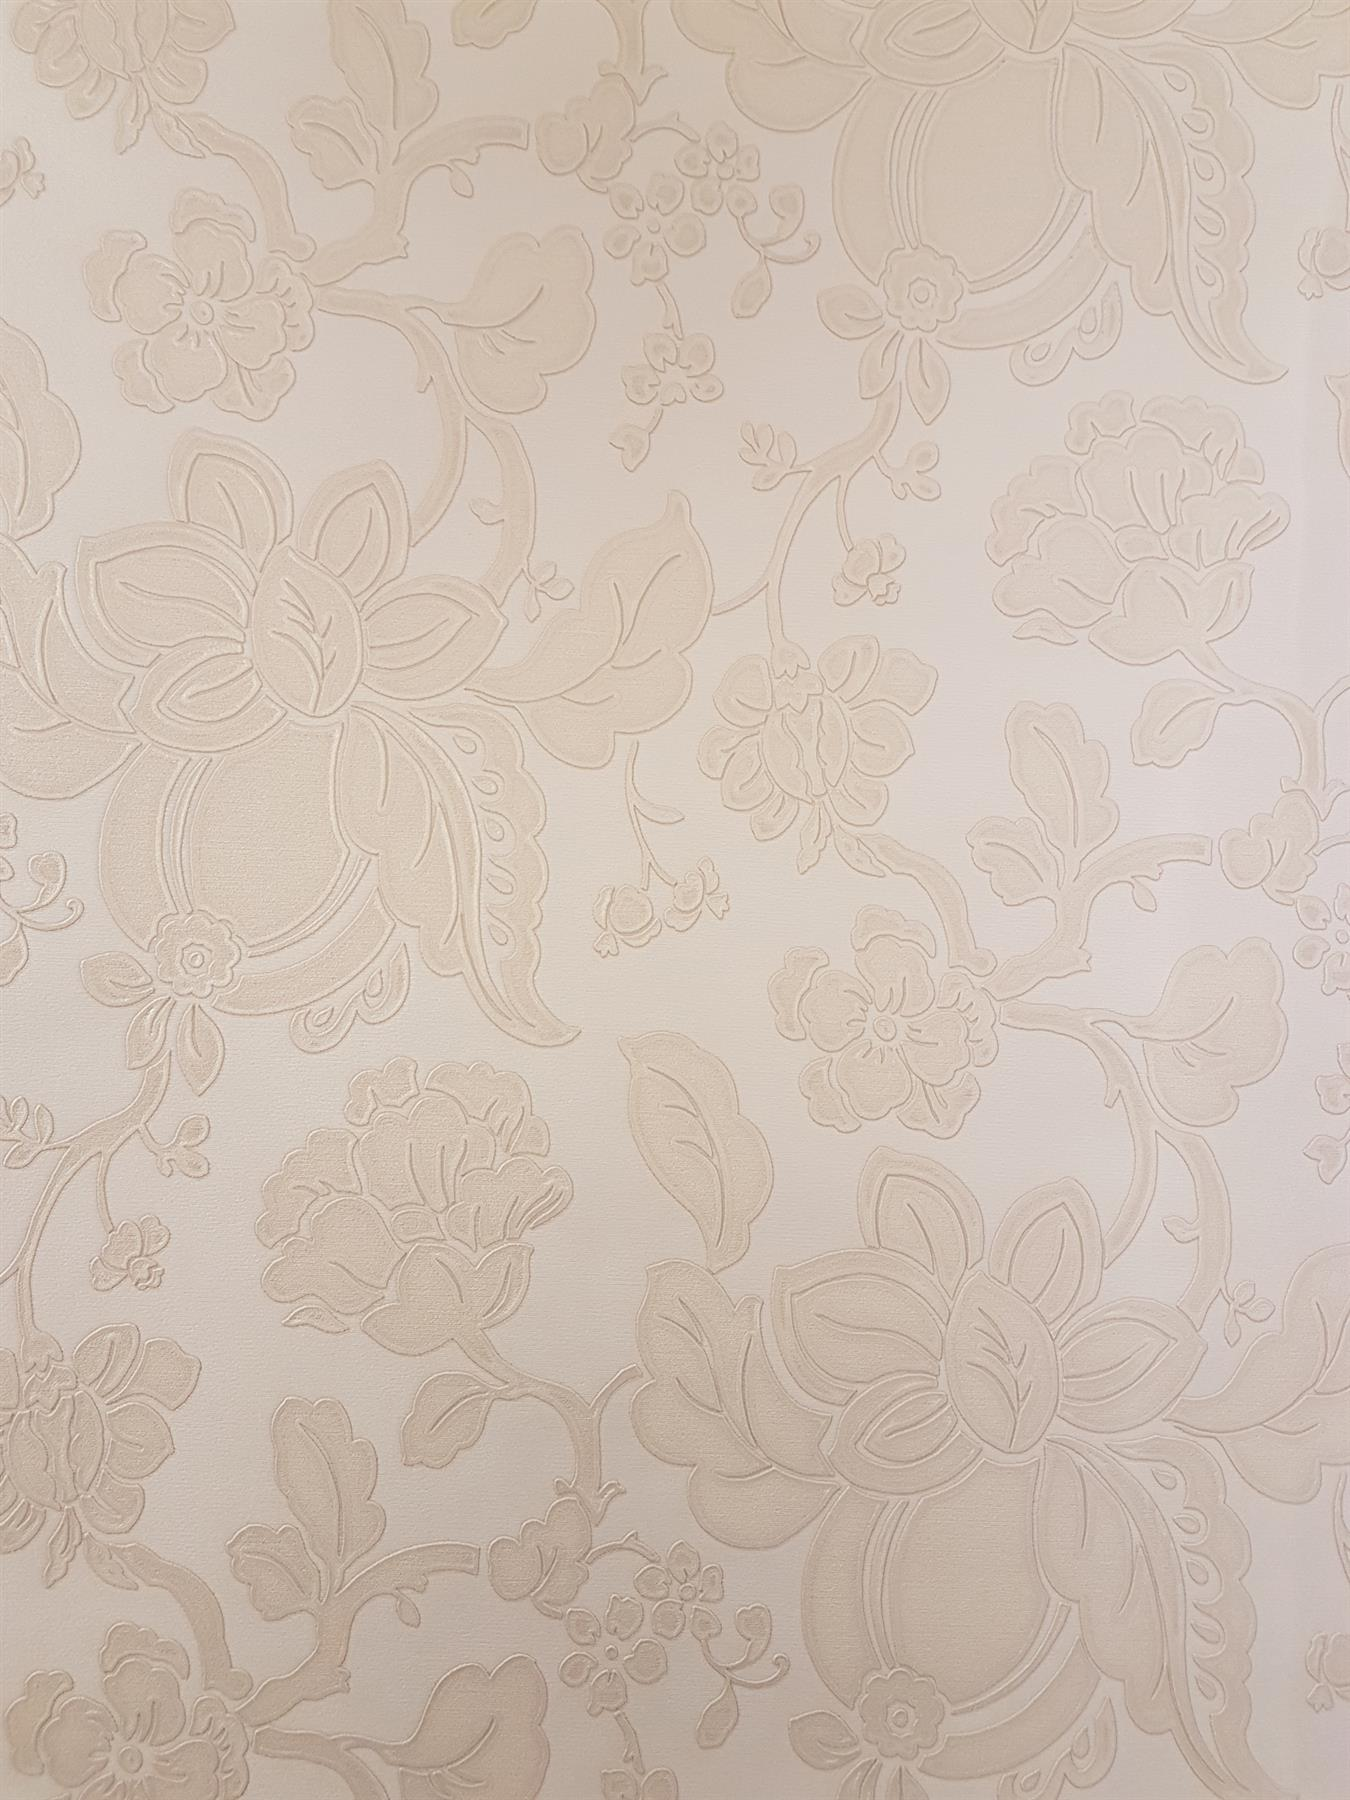 Cream Beige Floral Wallpaper Glitter Gold Flowers Italian Vinyl